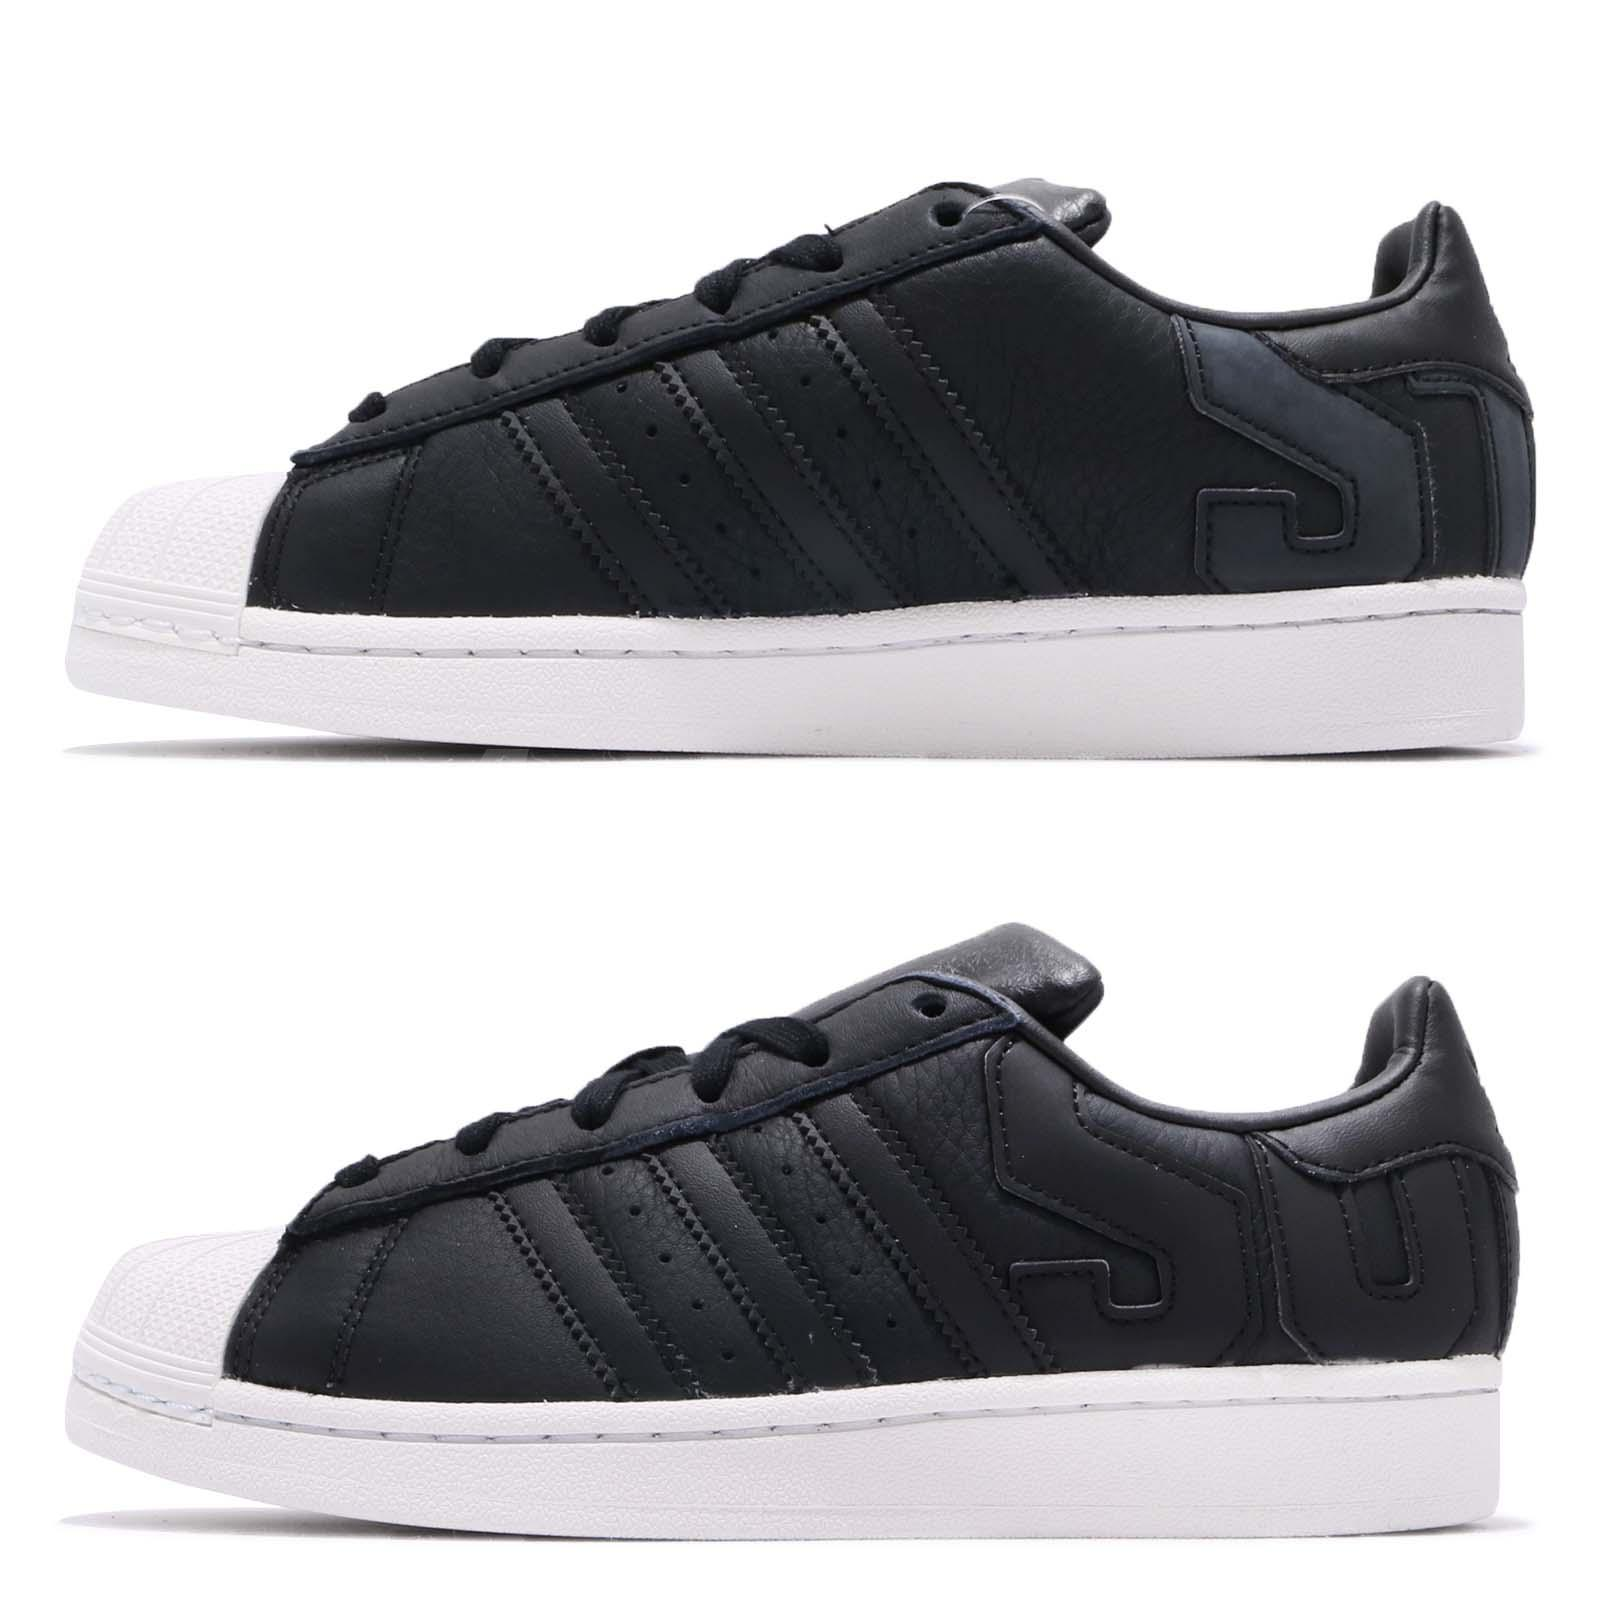 separation shoes 682a7 aa759 adidas Originals Superstar Big Logo Black White Men Women Casual Shoes  B37985